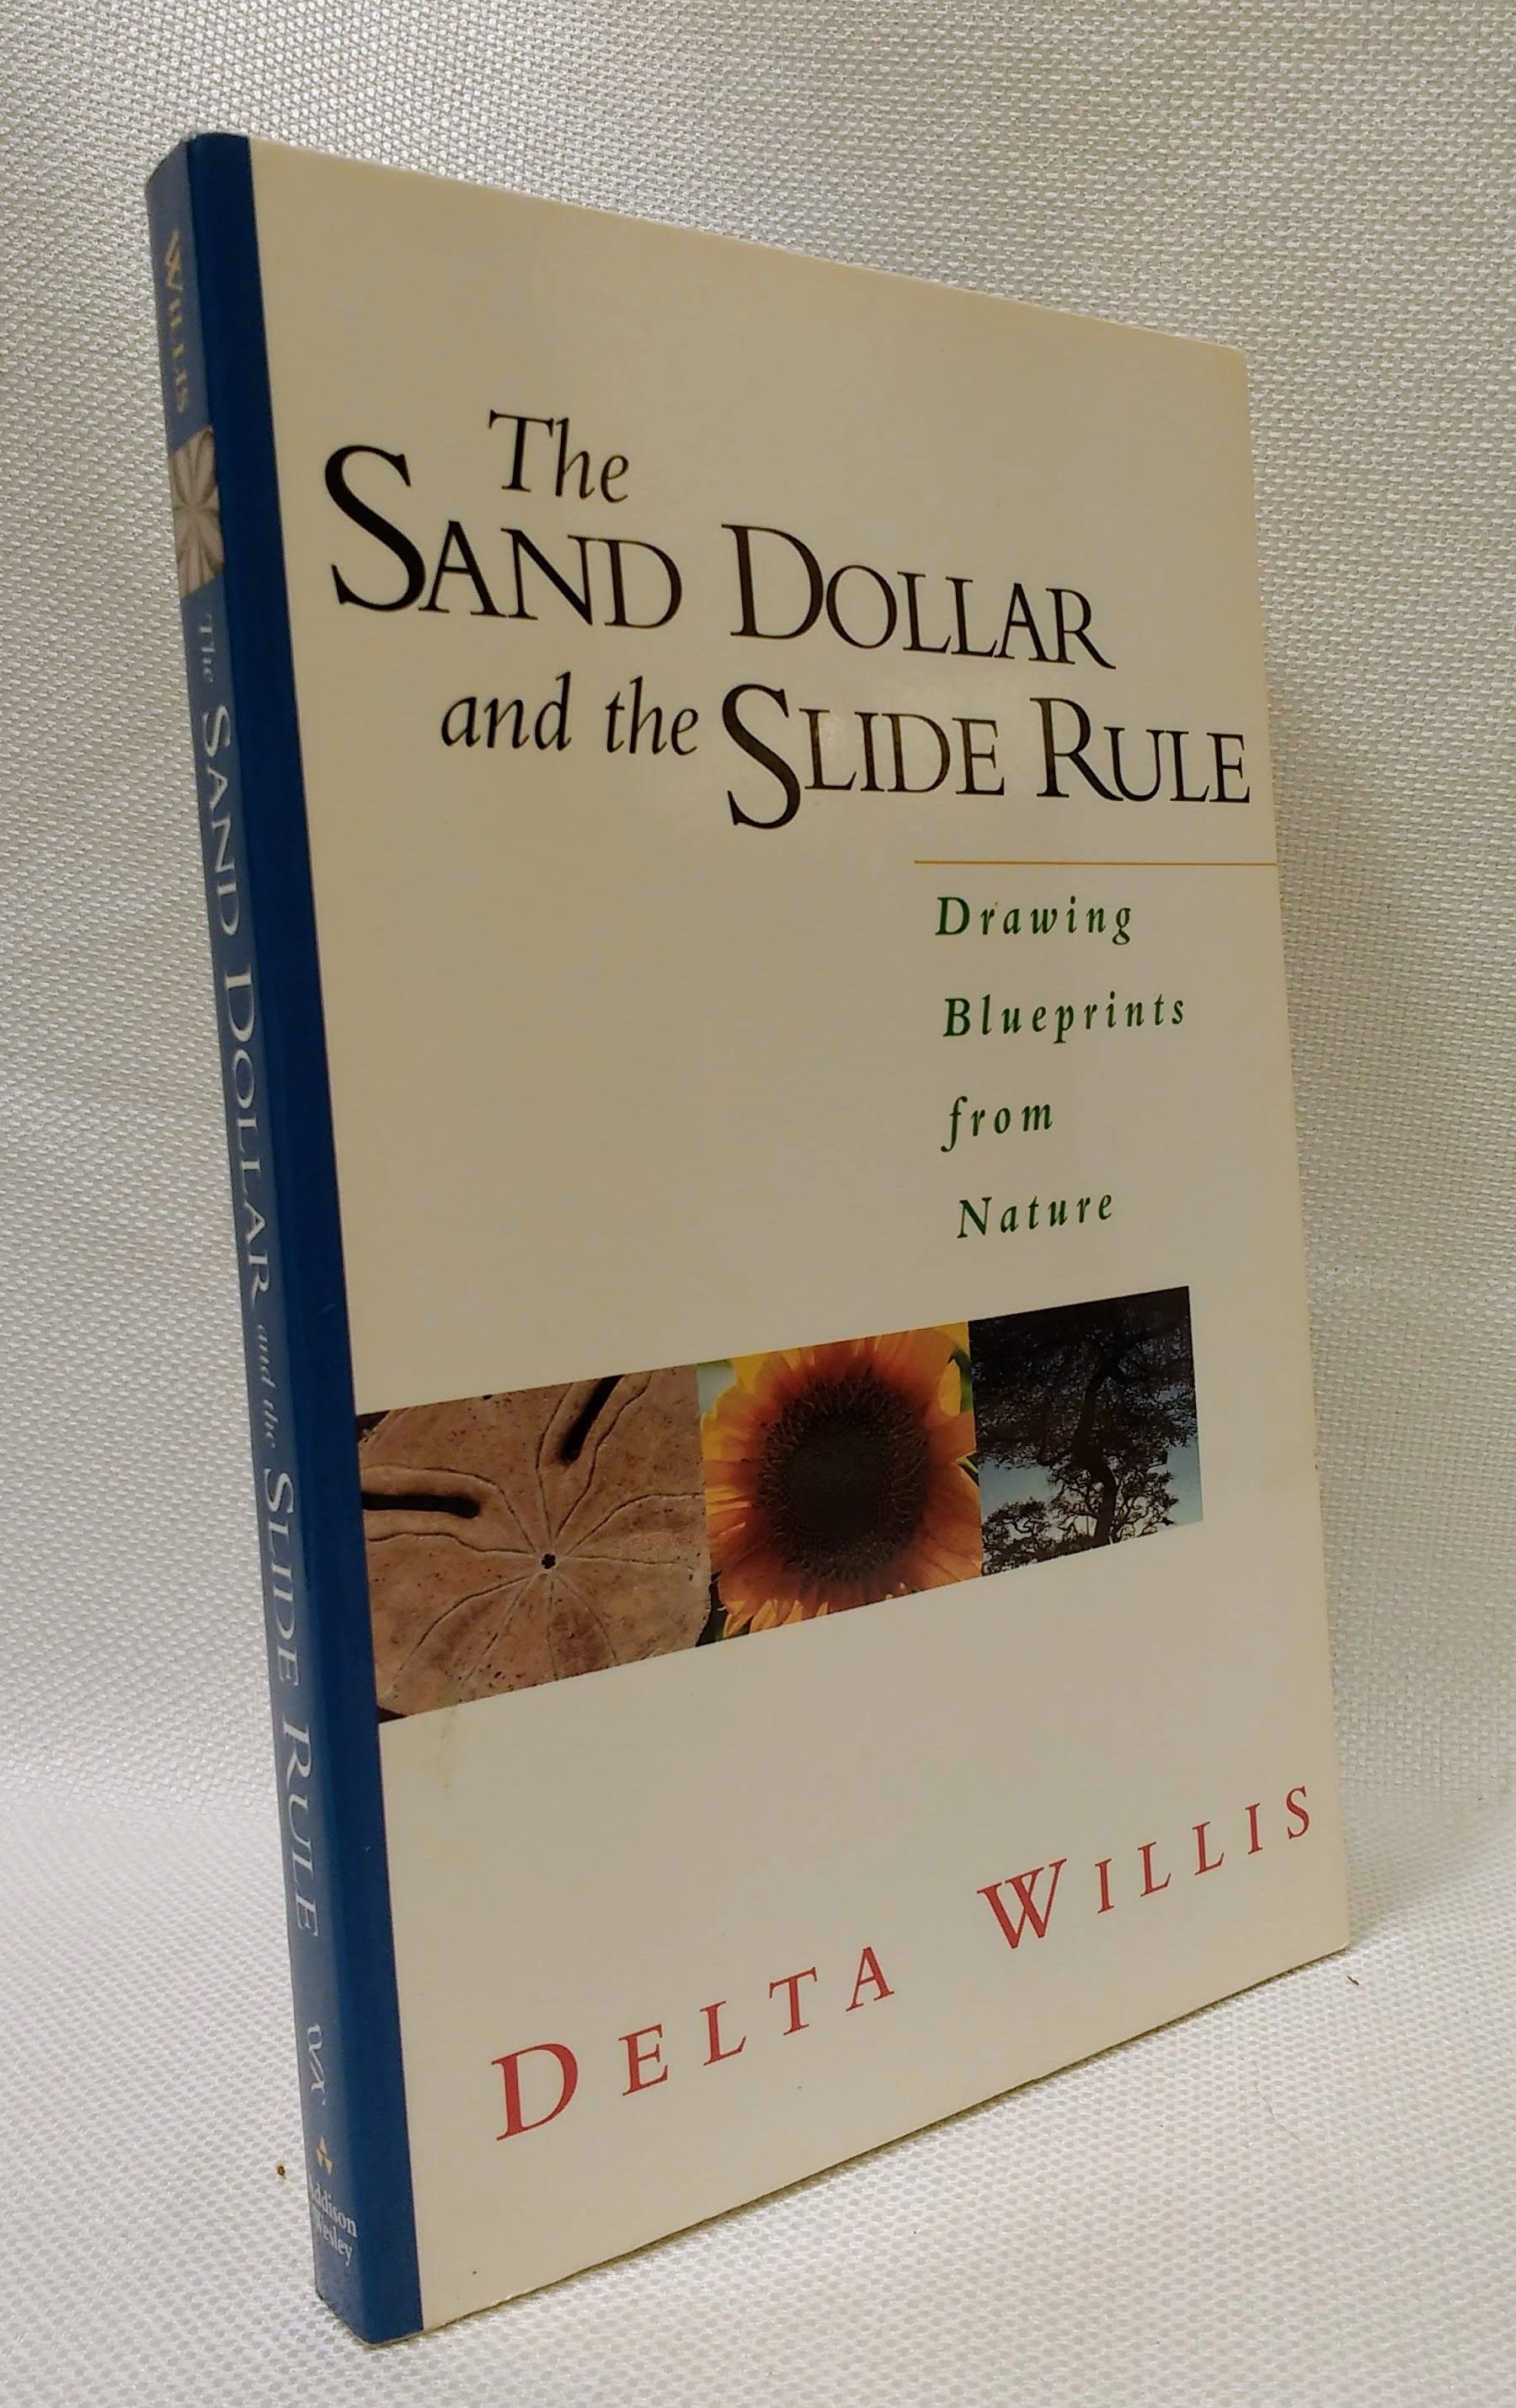 The Sand Dollar And The Slide Rule: Drawing Blueprints From Nature, Willis, Delta